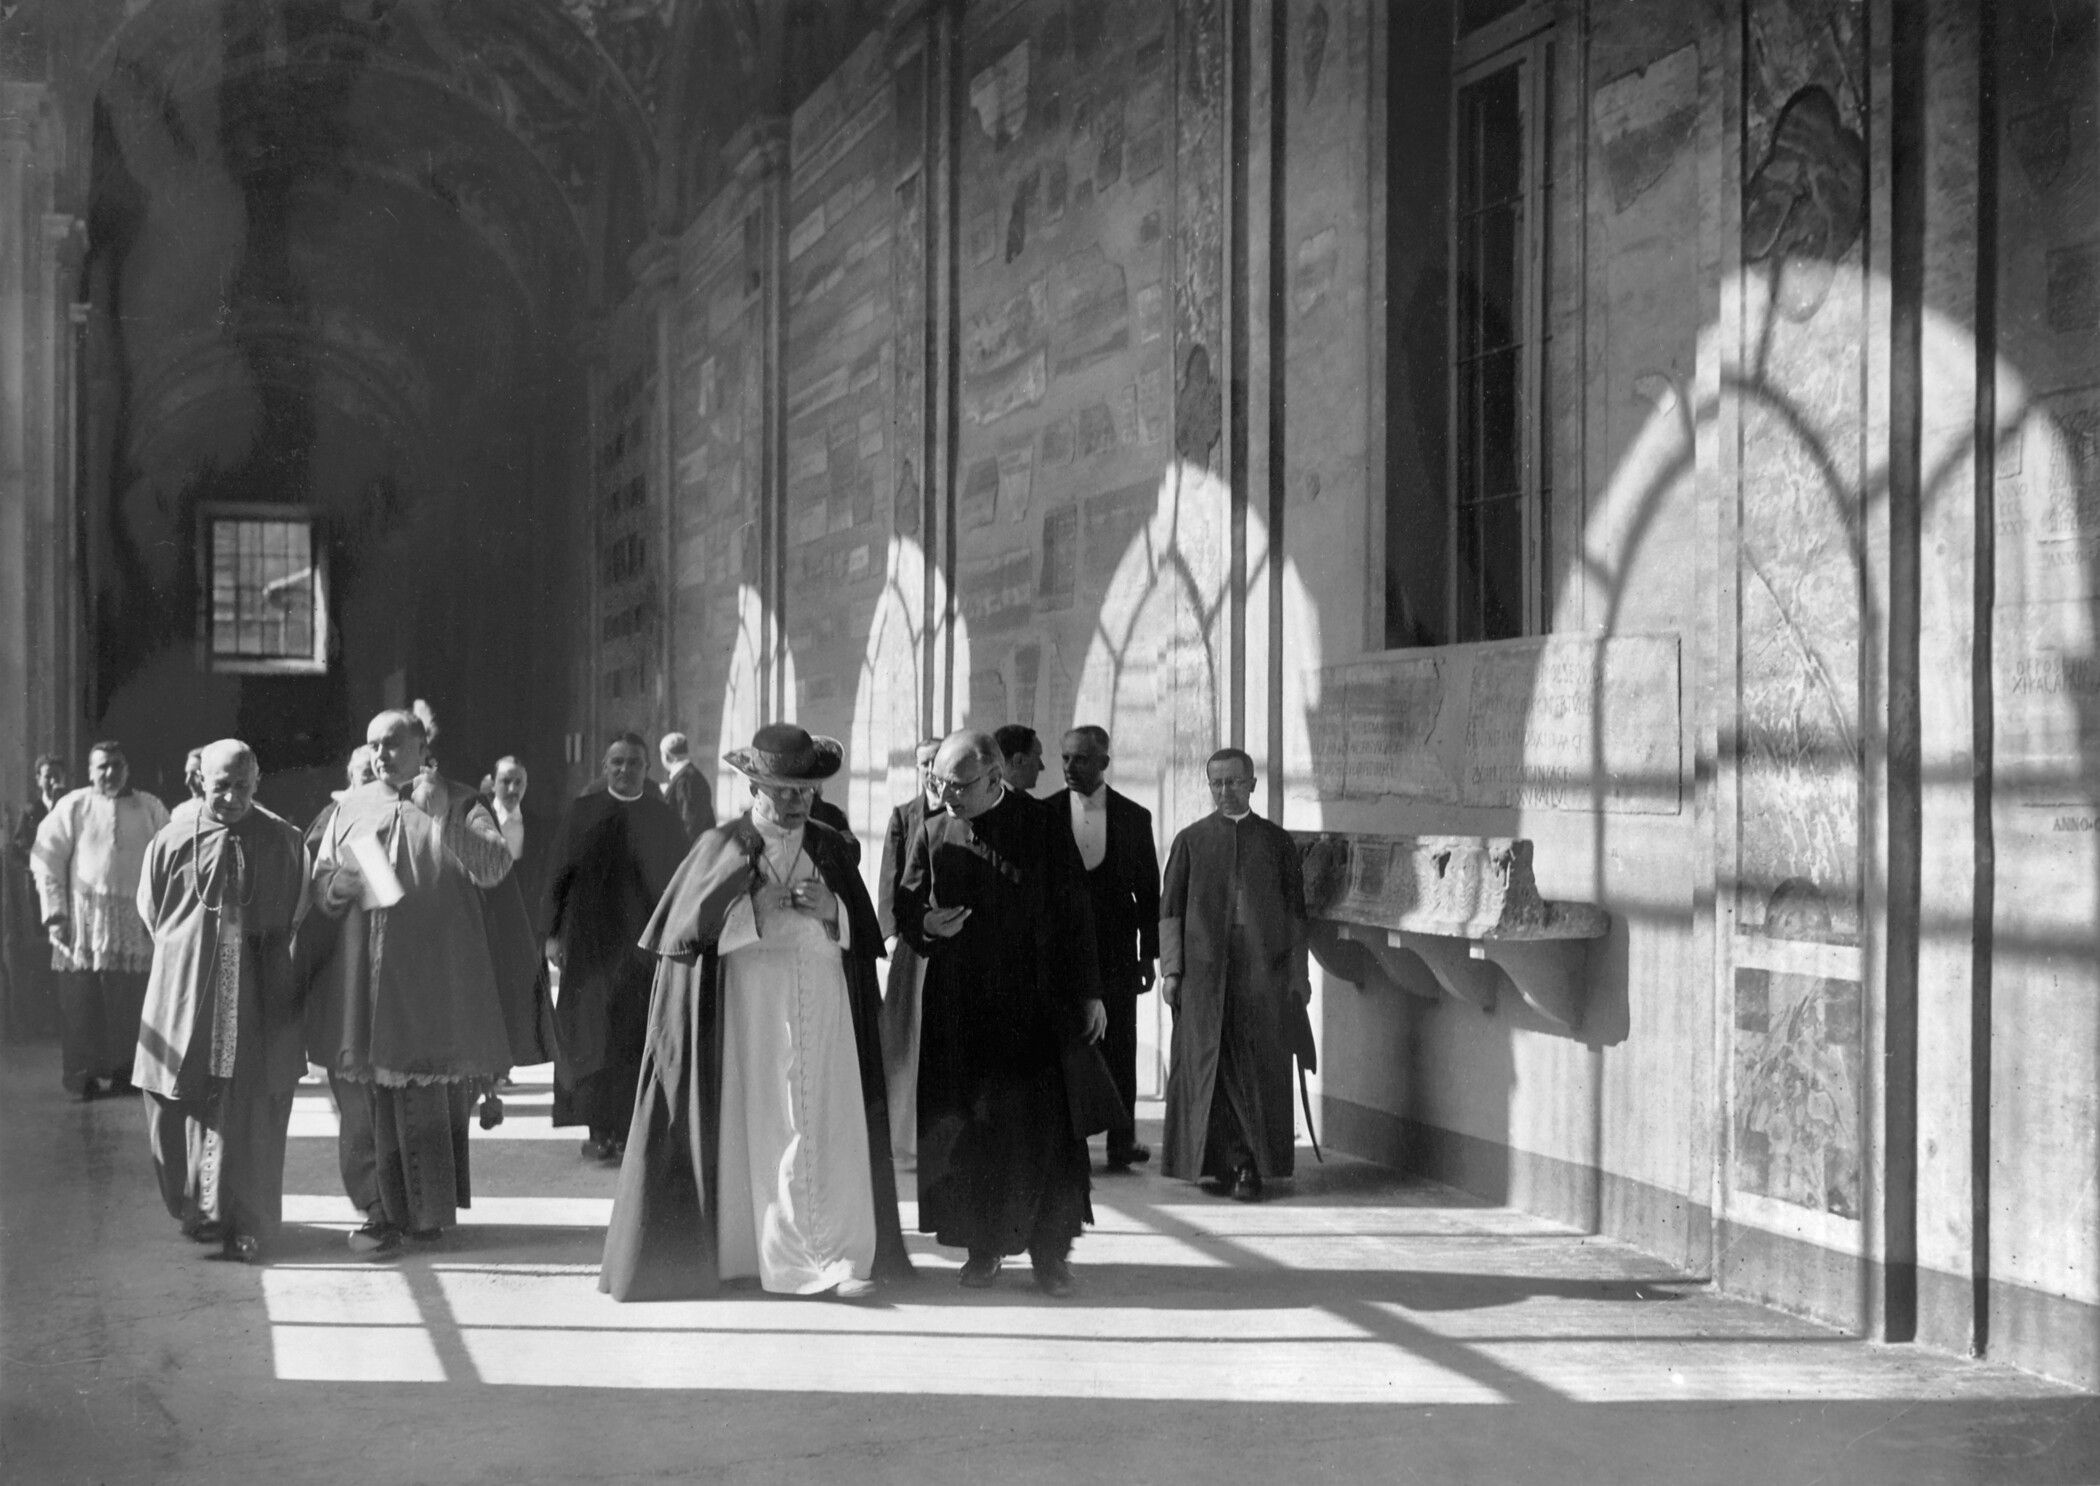 Father Wilhelm Schmidt with Pope Pius XI at the opening of the missionary ethnological museum in the Lateran, Rome, 20 December 1929; Photo Felici, Rome; SVD, Mission House St. Gabriel